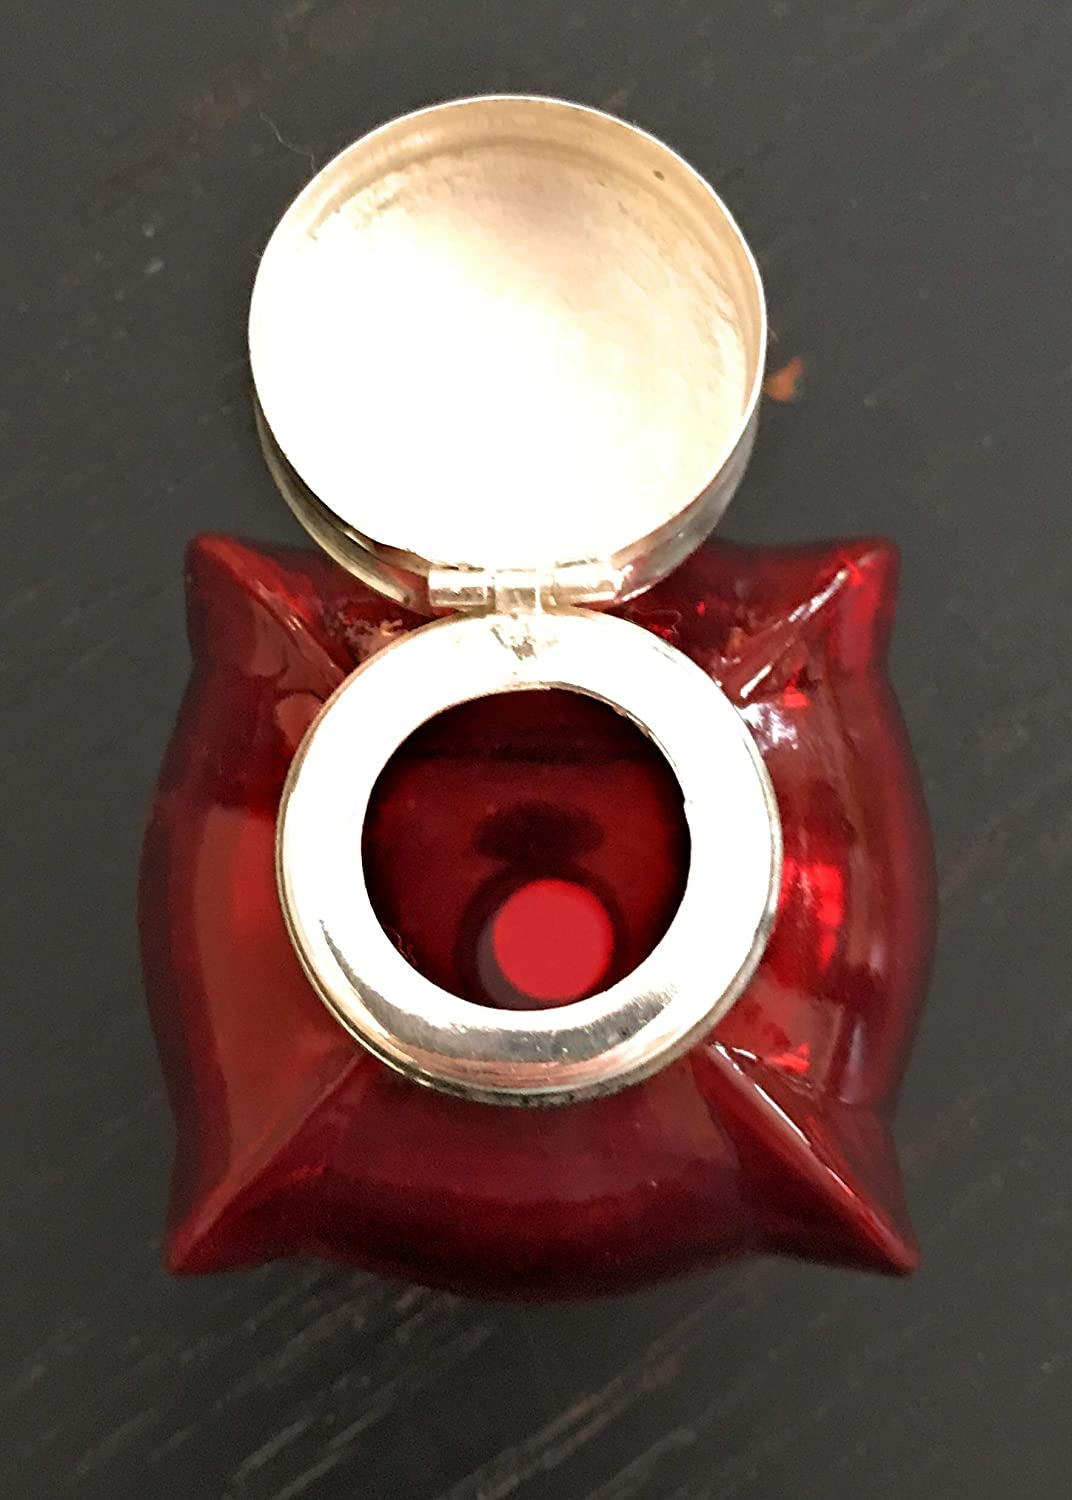 Square Bubble Shaped 2.75 Inches Wide X 3.25 Inches Tall Madison Bay Company Red Glass Inkwell